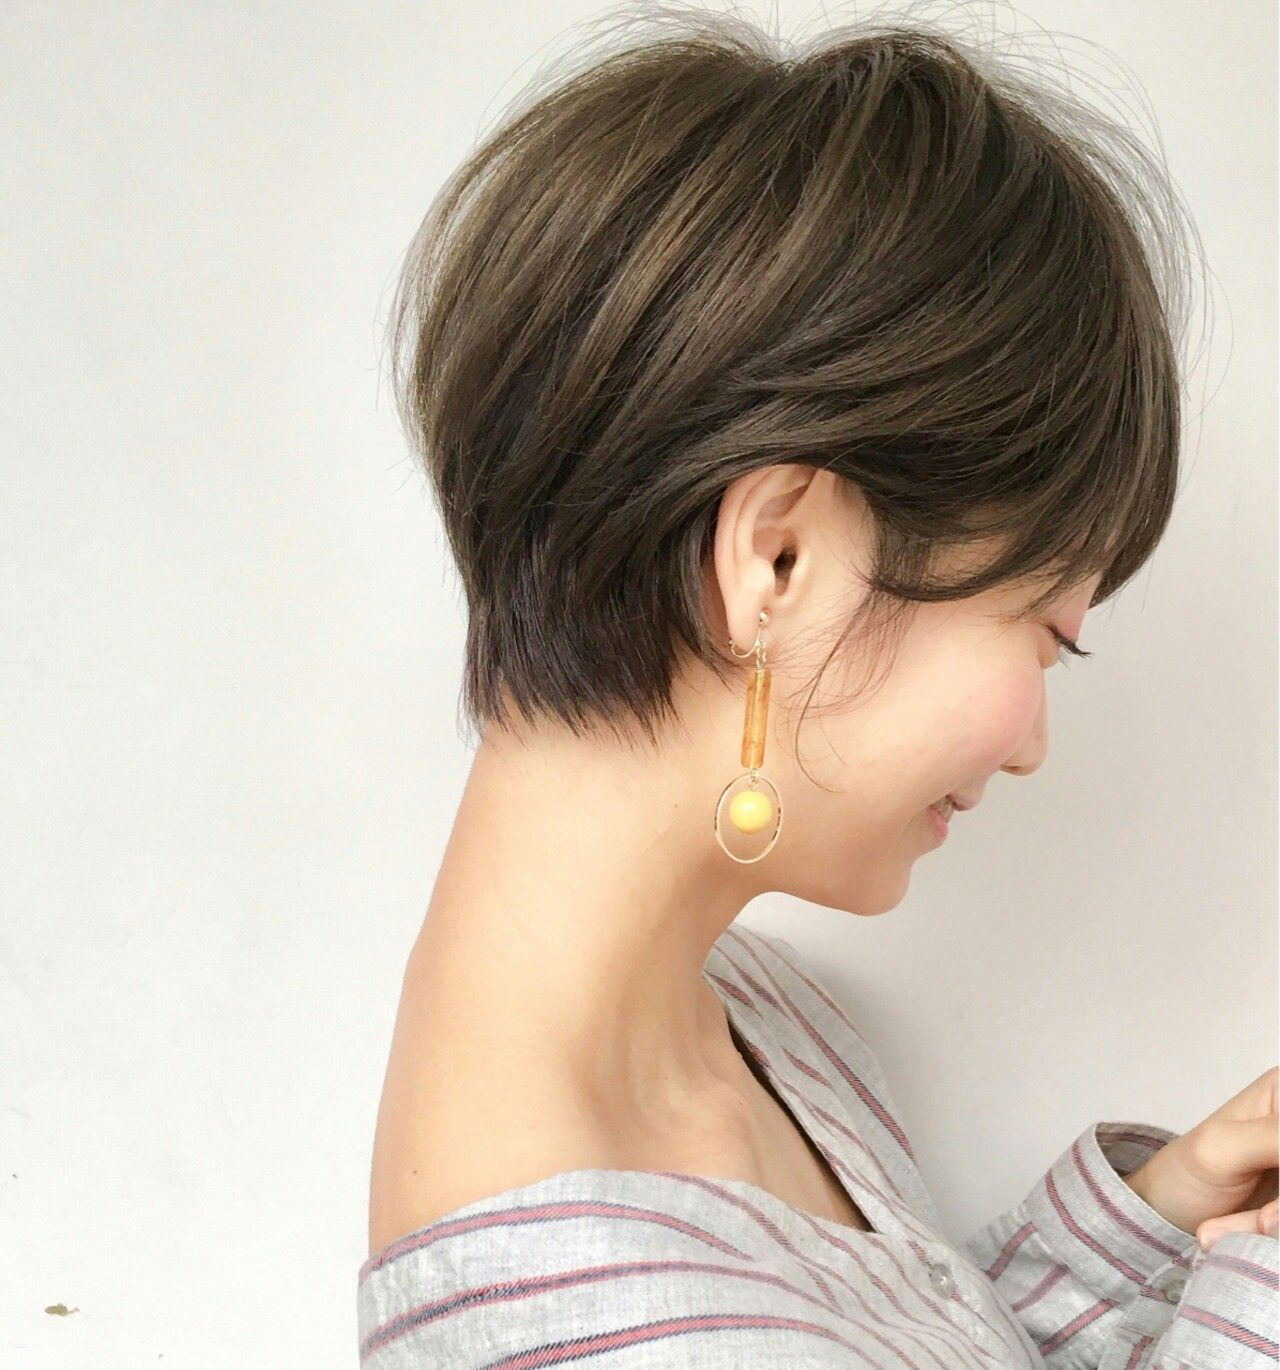 Pin by t on かわい子ちゃん pinterest pixies haircuts and hair style